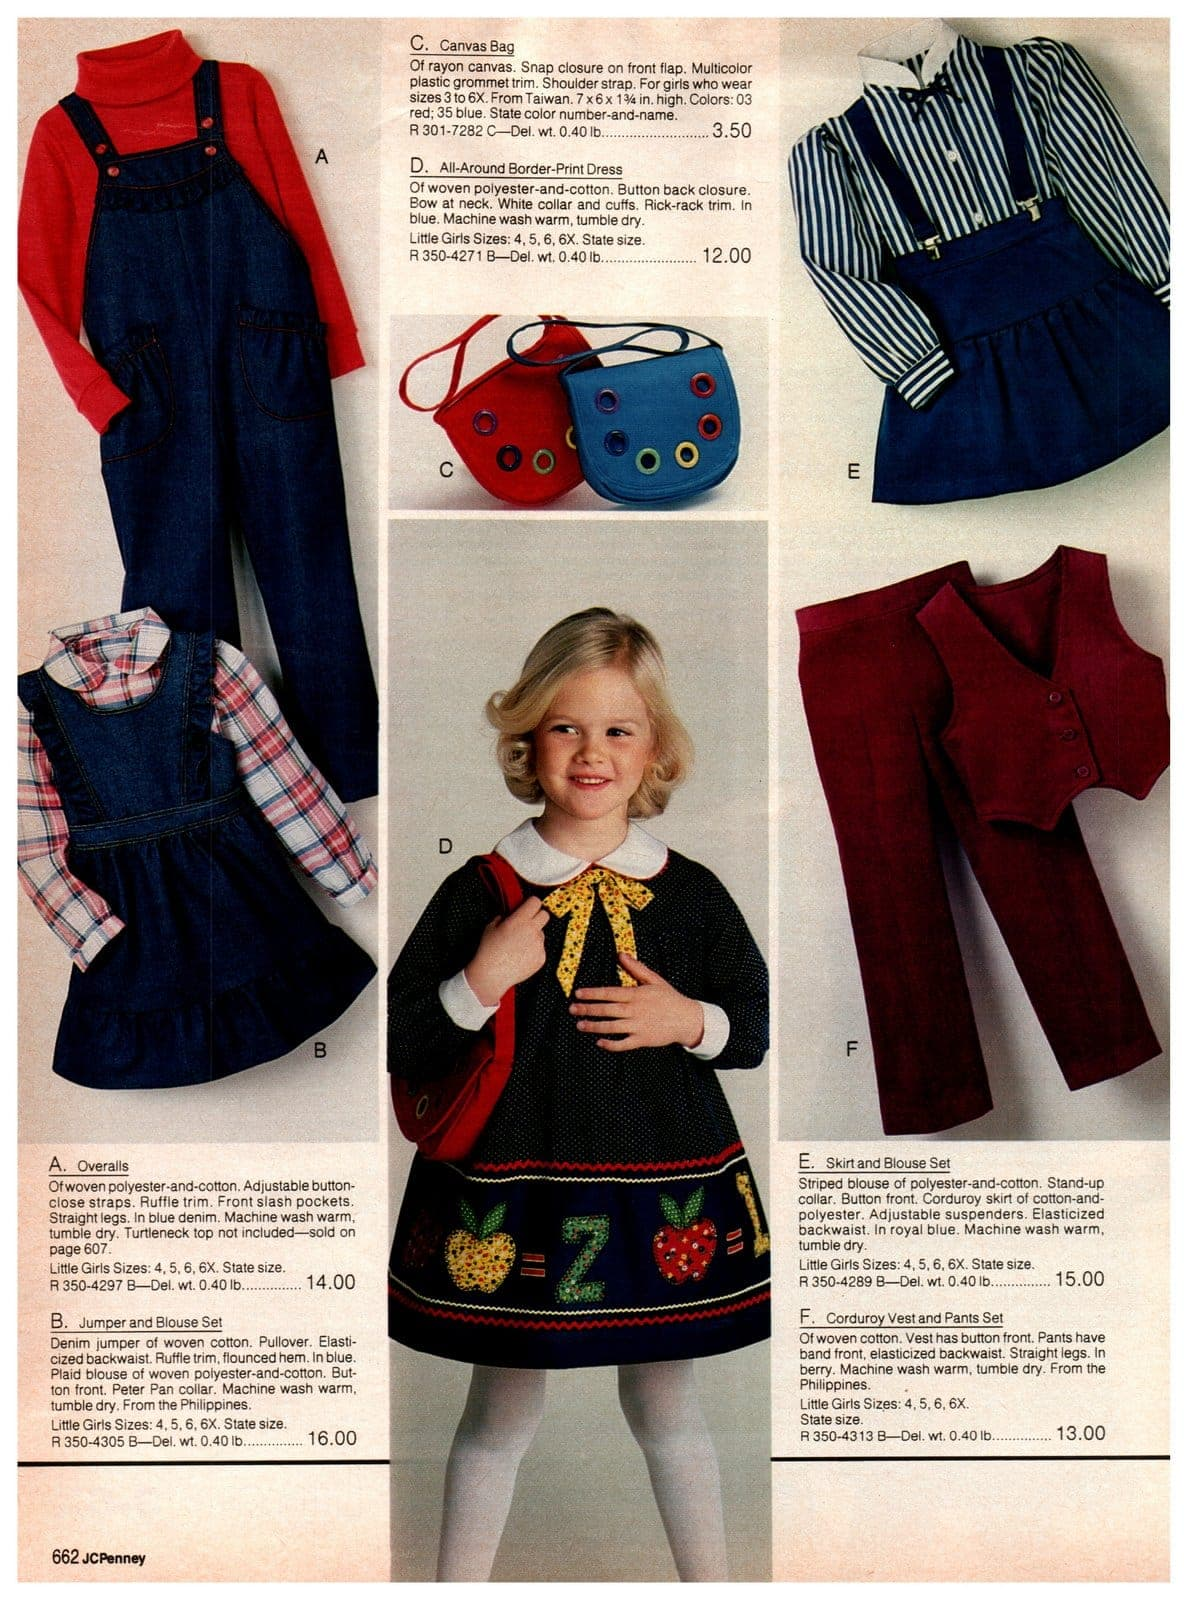 Ruffle-trim overalls, jumper and blouse sets, skirts and blouses and corduroy vests and pants